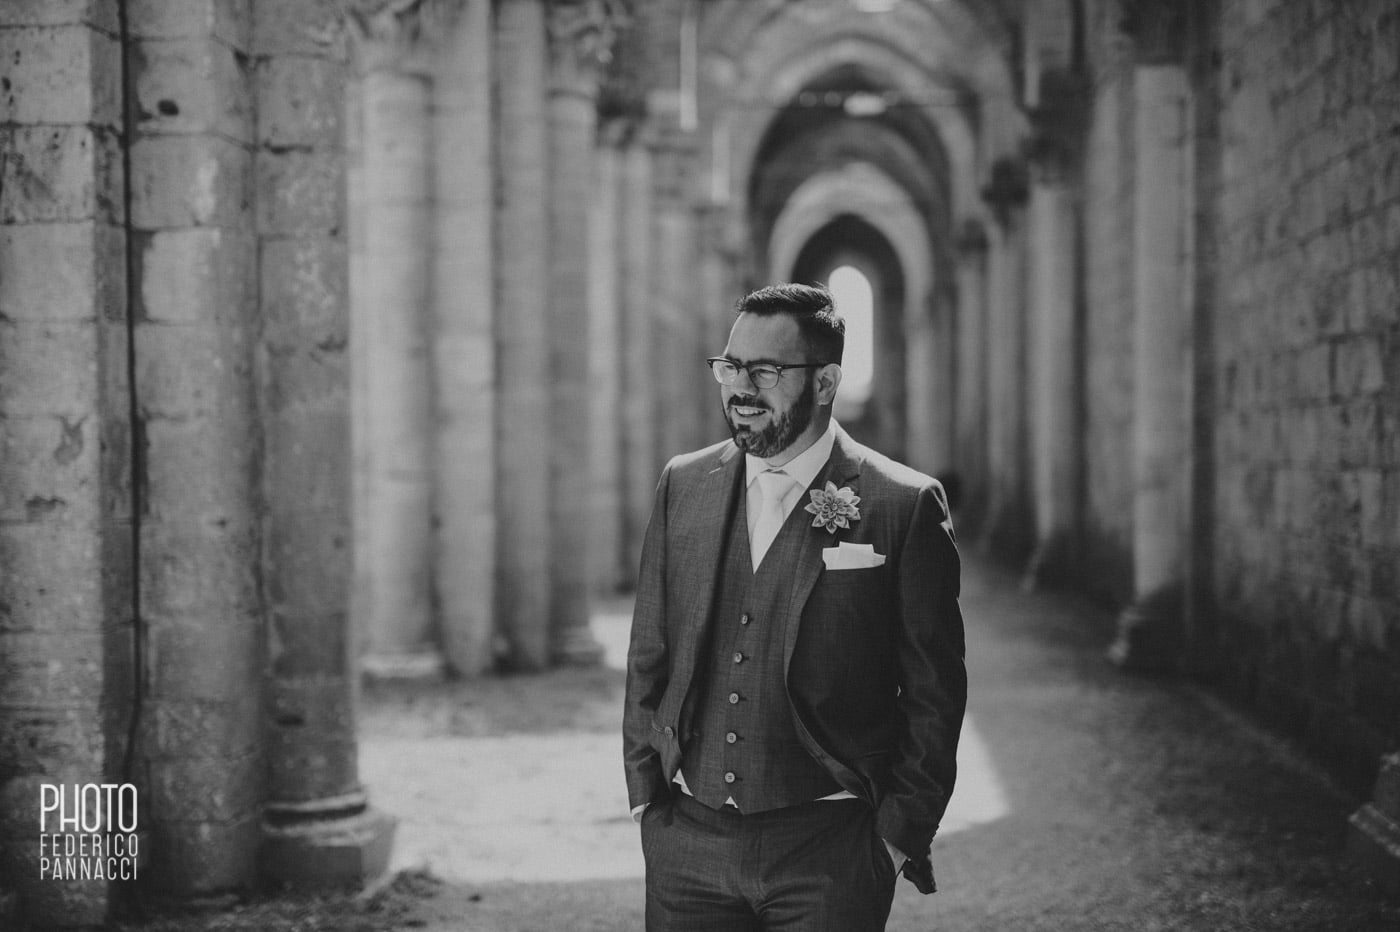 046-DestinationWedding-Sangalgano